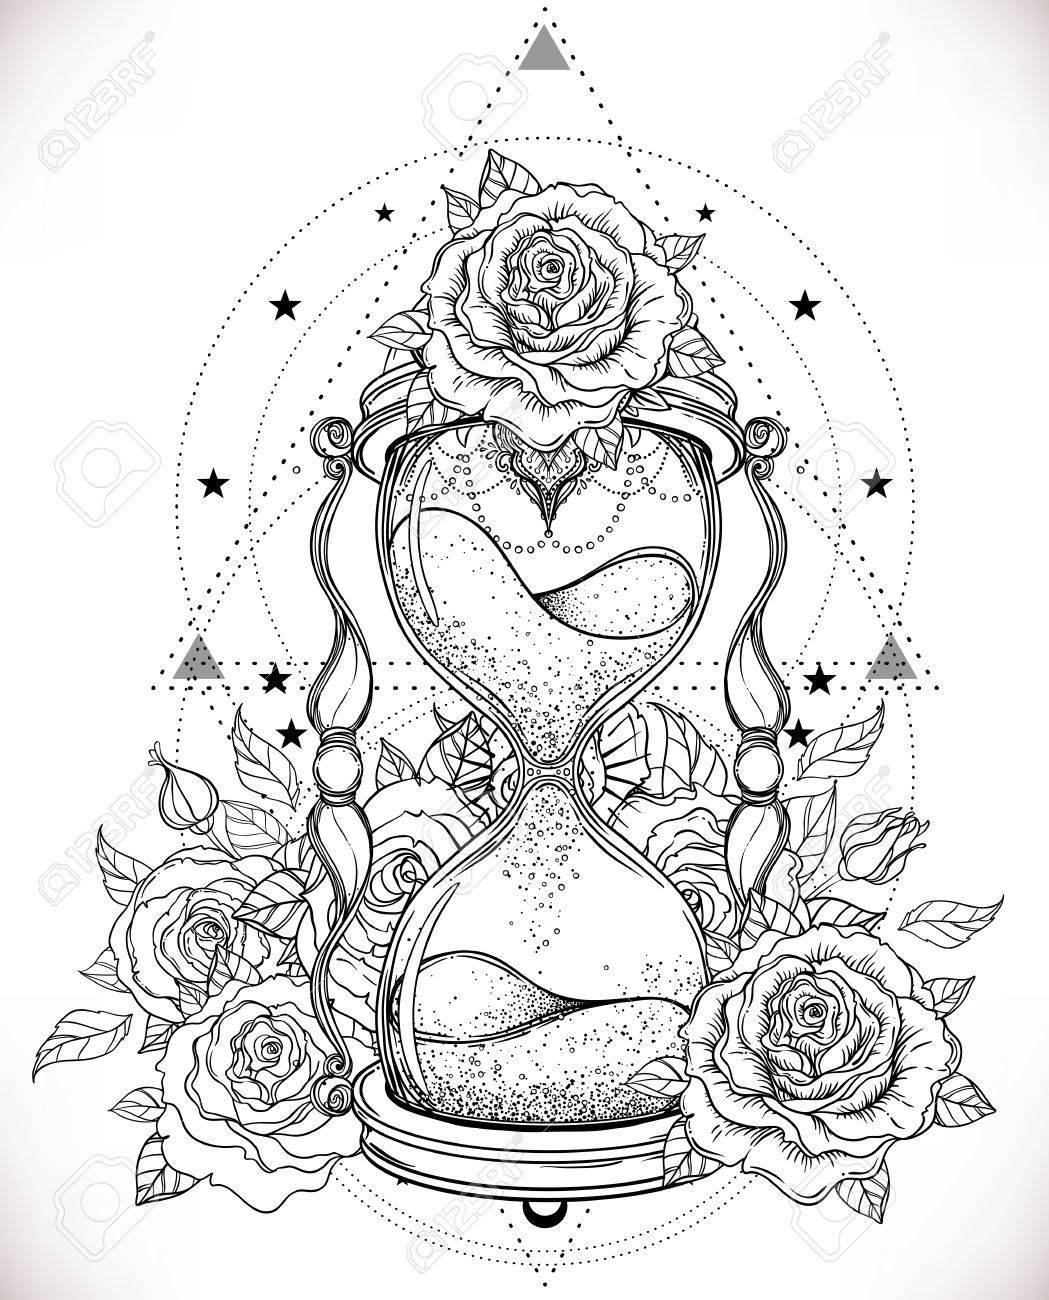 Decorative Antique Hourglass With Roses Illustration Isolated ...